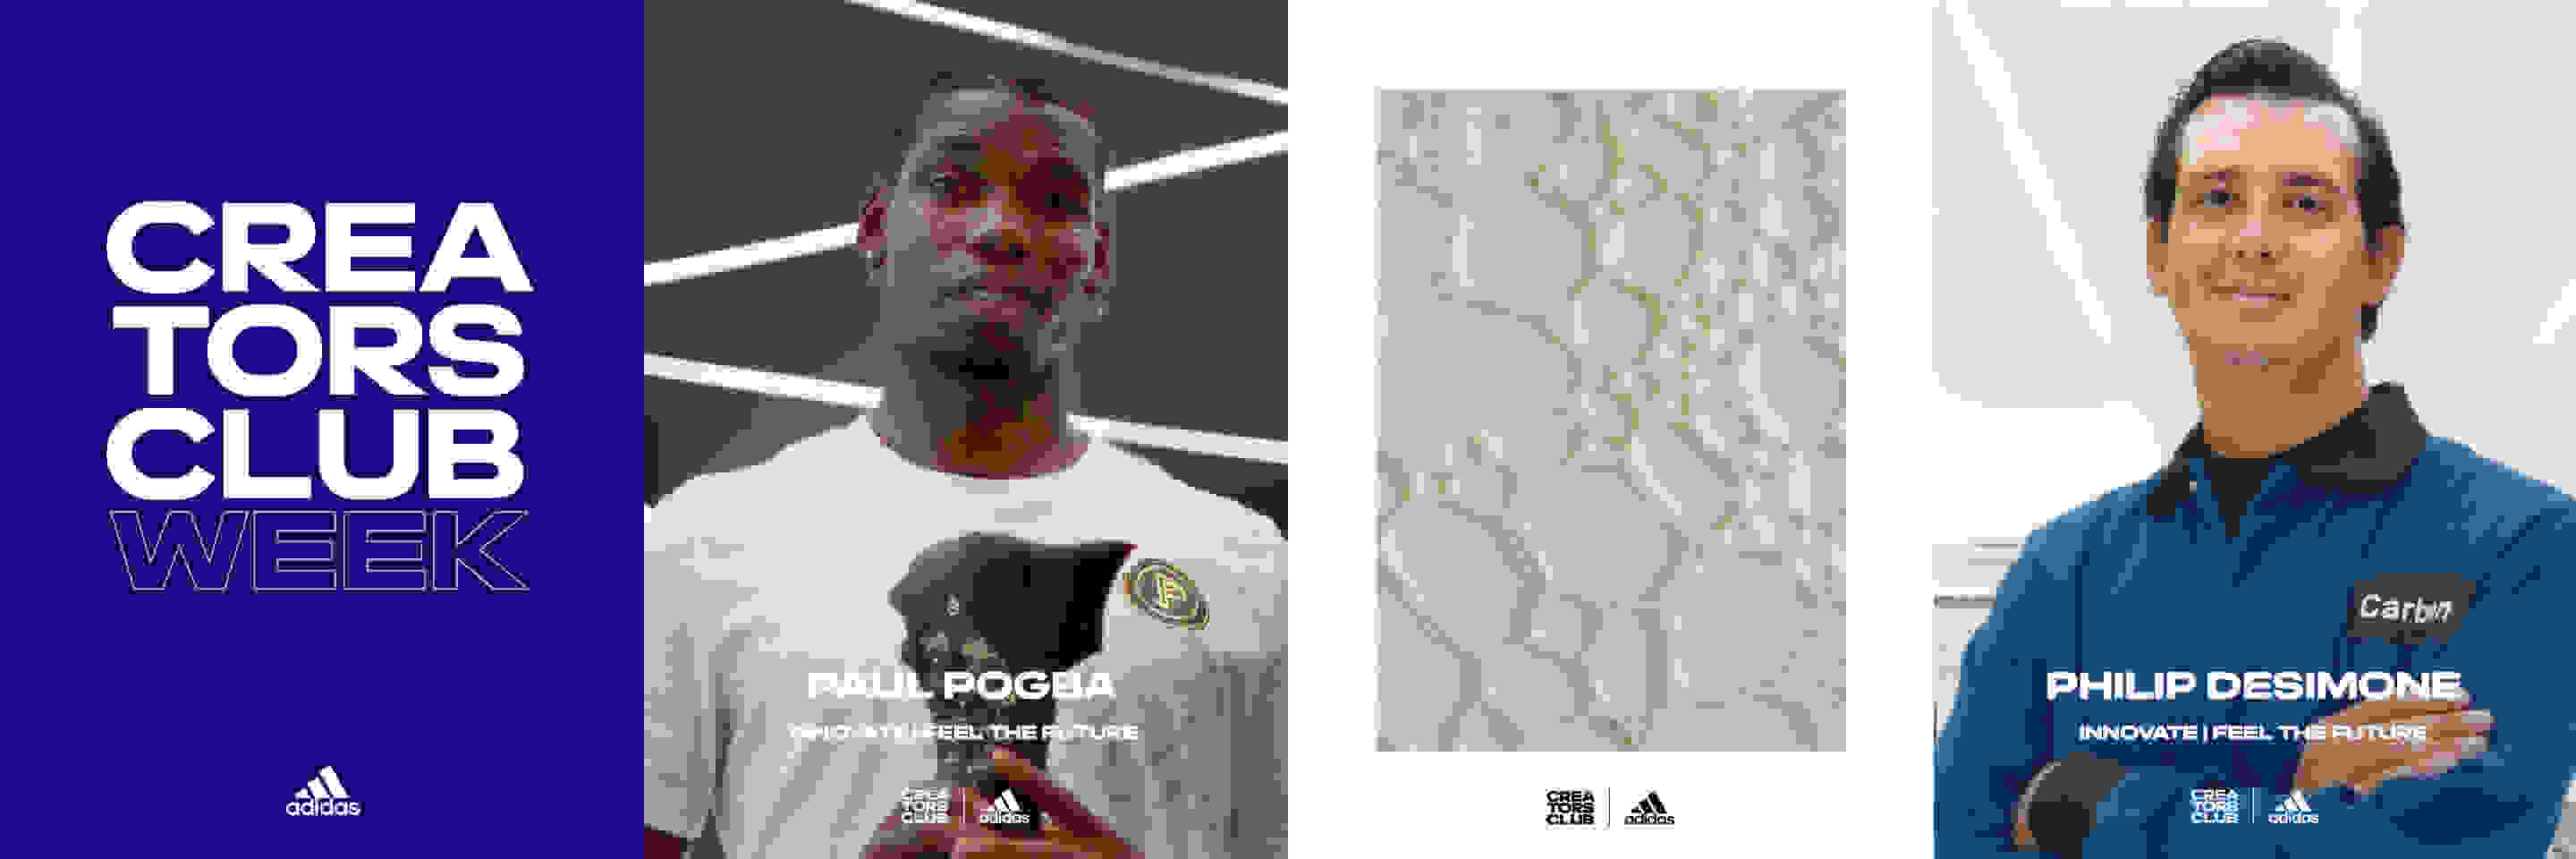 Adidas and Creators Club Week Logos. Paul Pogba showing off the Predator Mutator and next to him a picture of the unique 4D carbon outsole